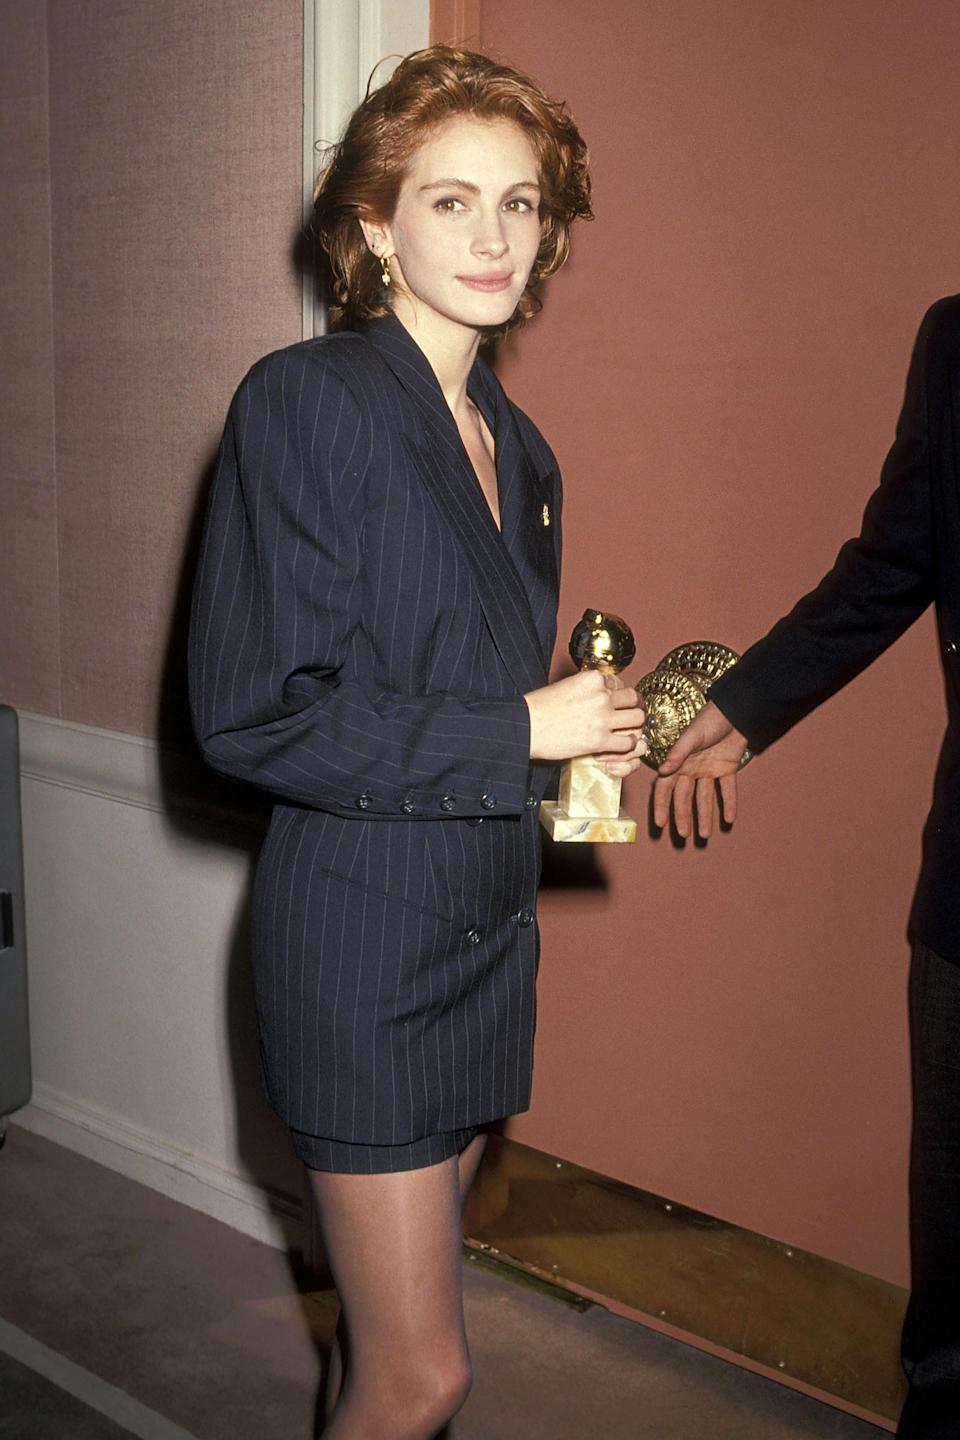 """<strong><h2>1991</h2></strong><br><em>Ahh</em>, the skirt suit. It's no surprise this two-piece trend is making a major comeback when you look at Julia Roberts in this navy blue pinstripe style.<br><br><em>Julia Roberts in a navy blue suit. </em><span class=""""copyright"""">Photo: Ron Galella, Ltd./WireImage.</span>"""